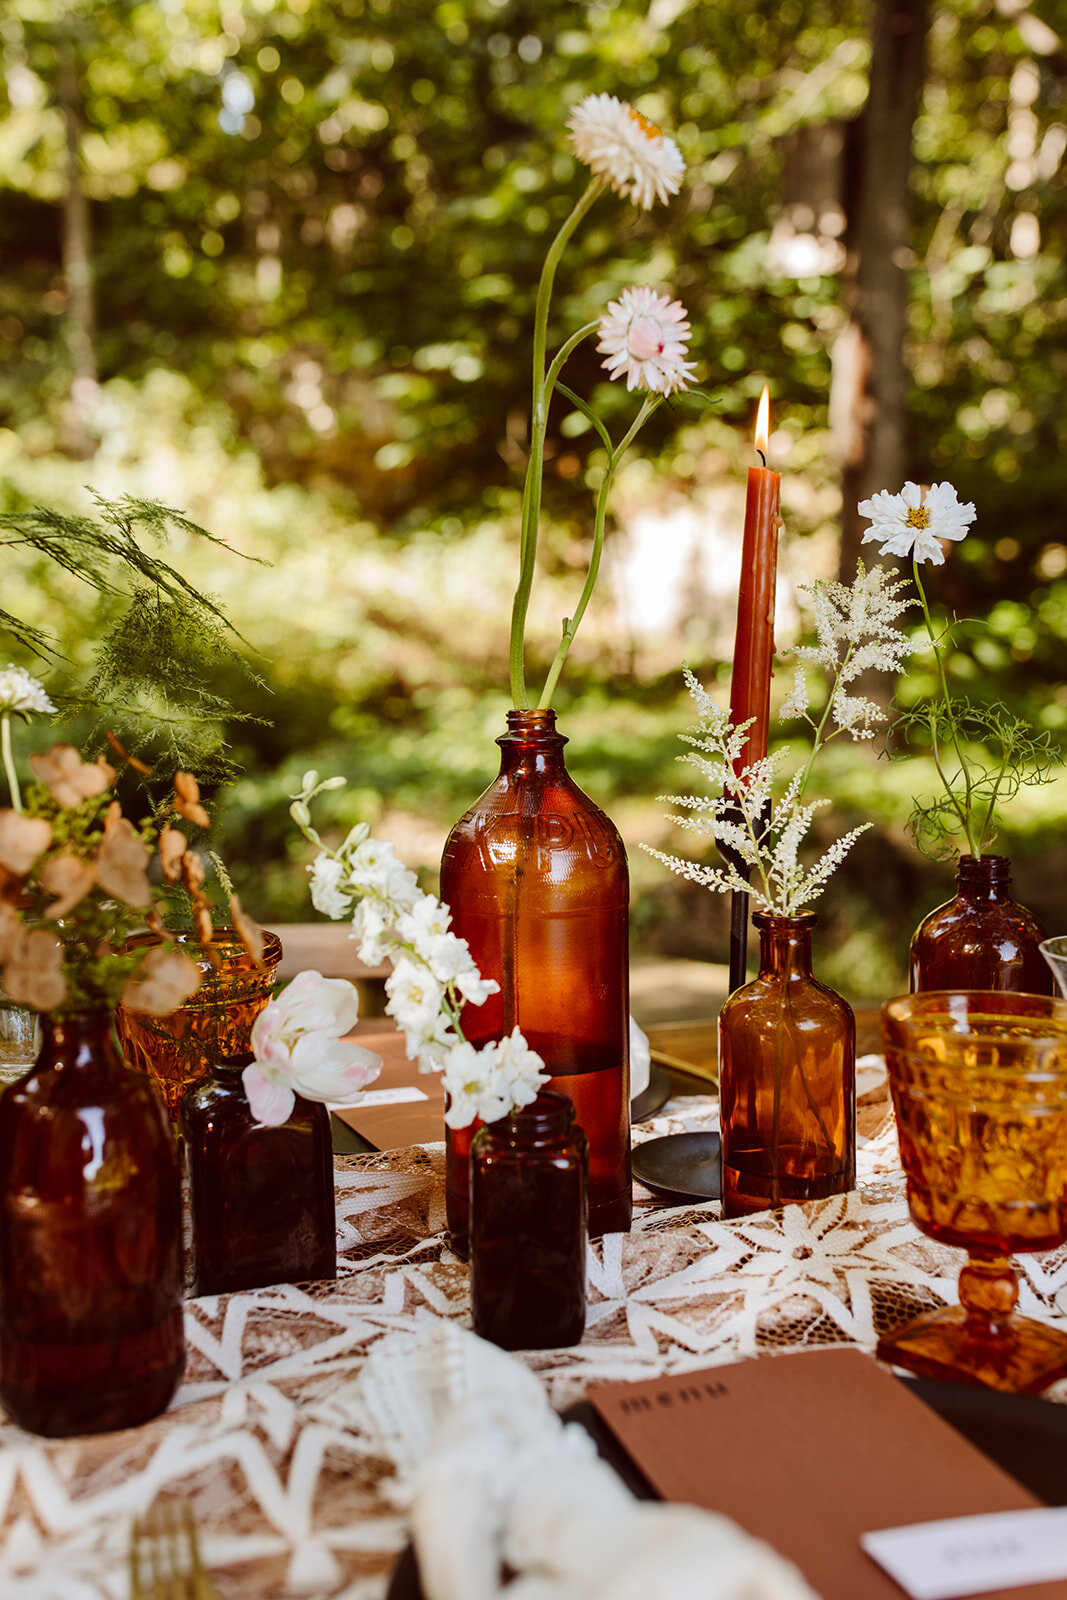 Amber bud vases with starry lace table runner